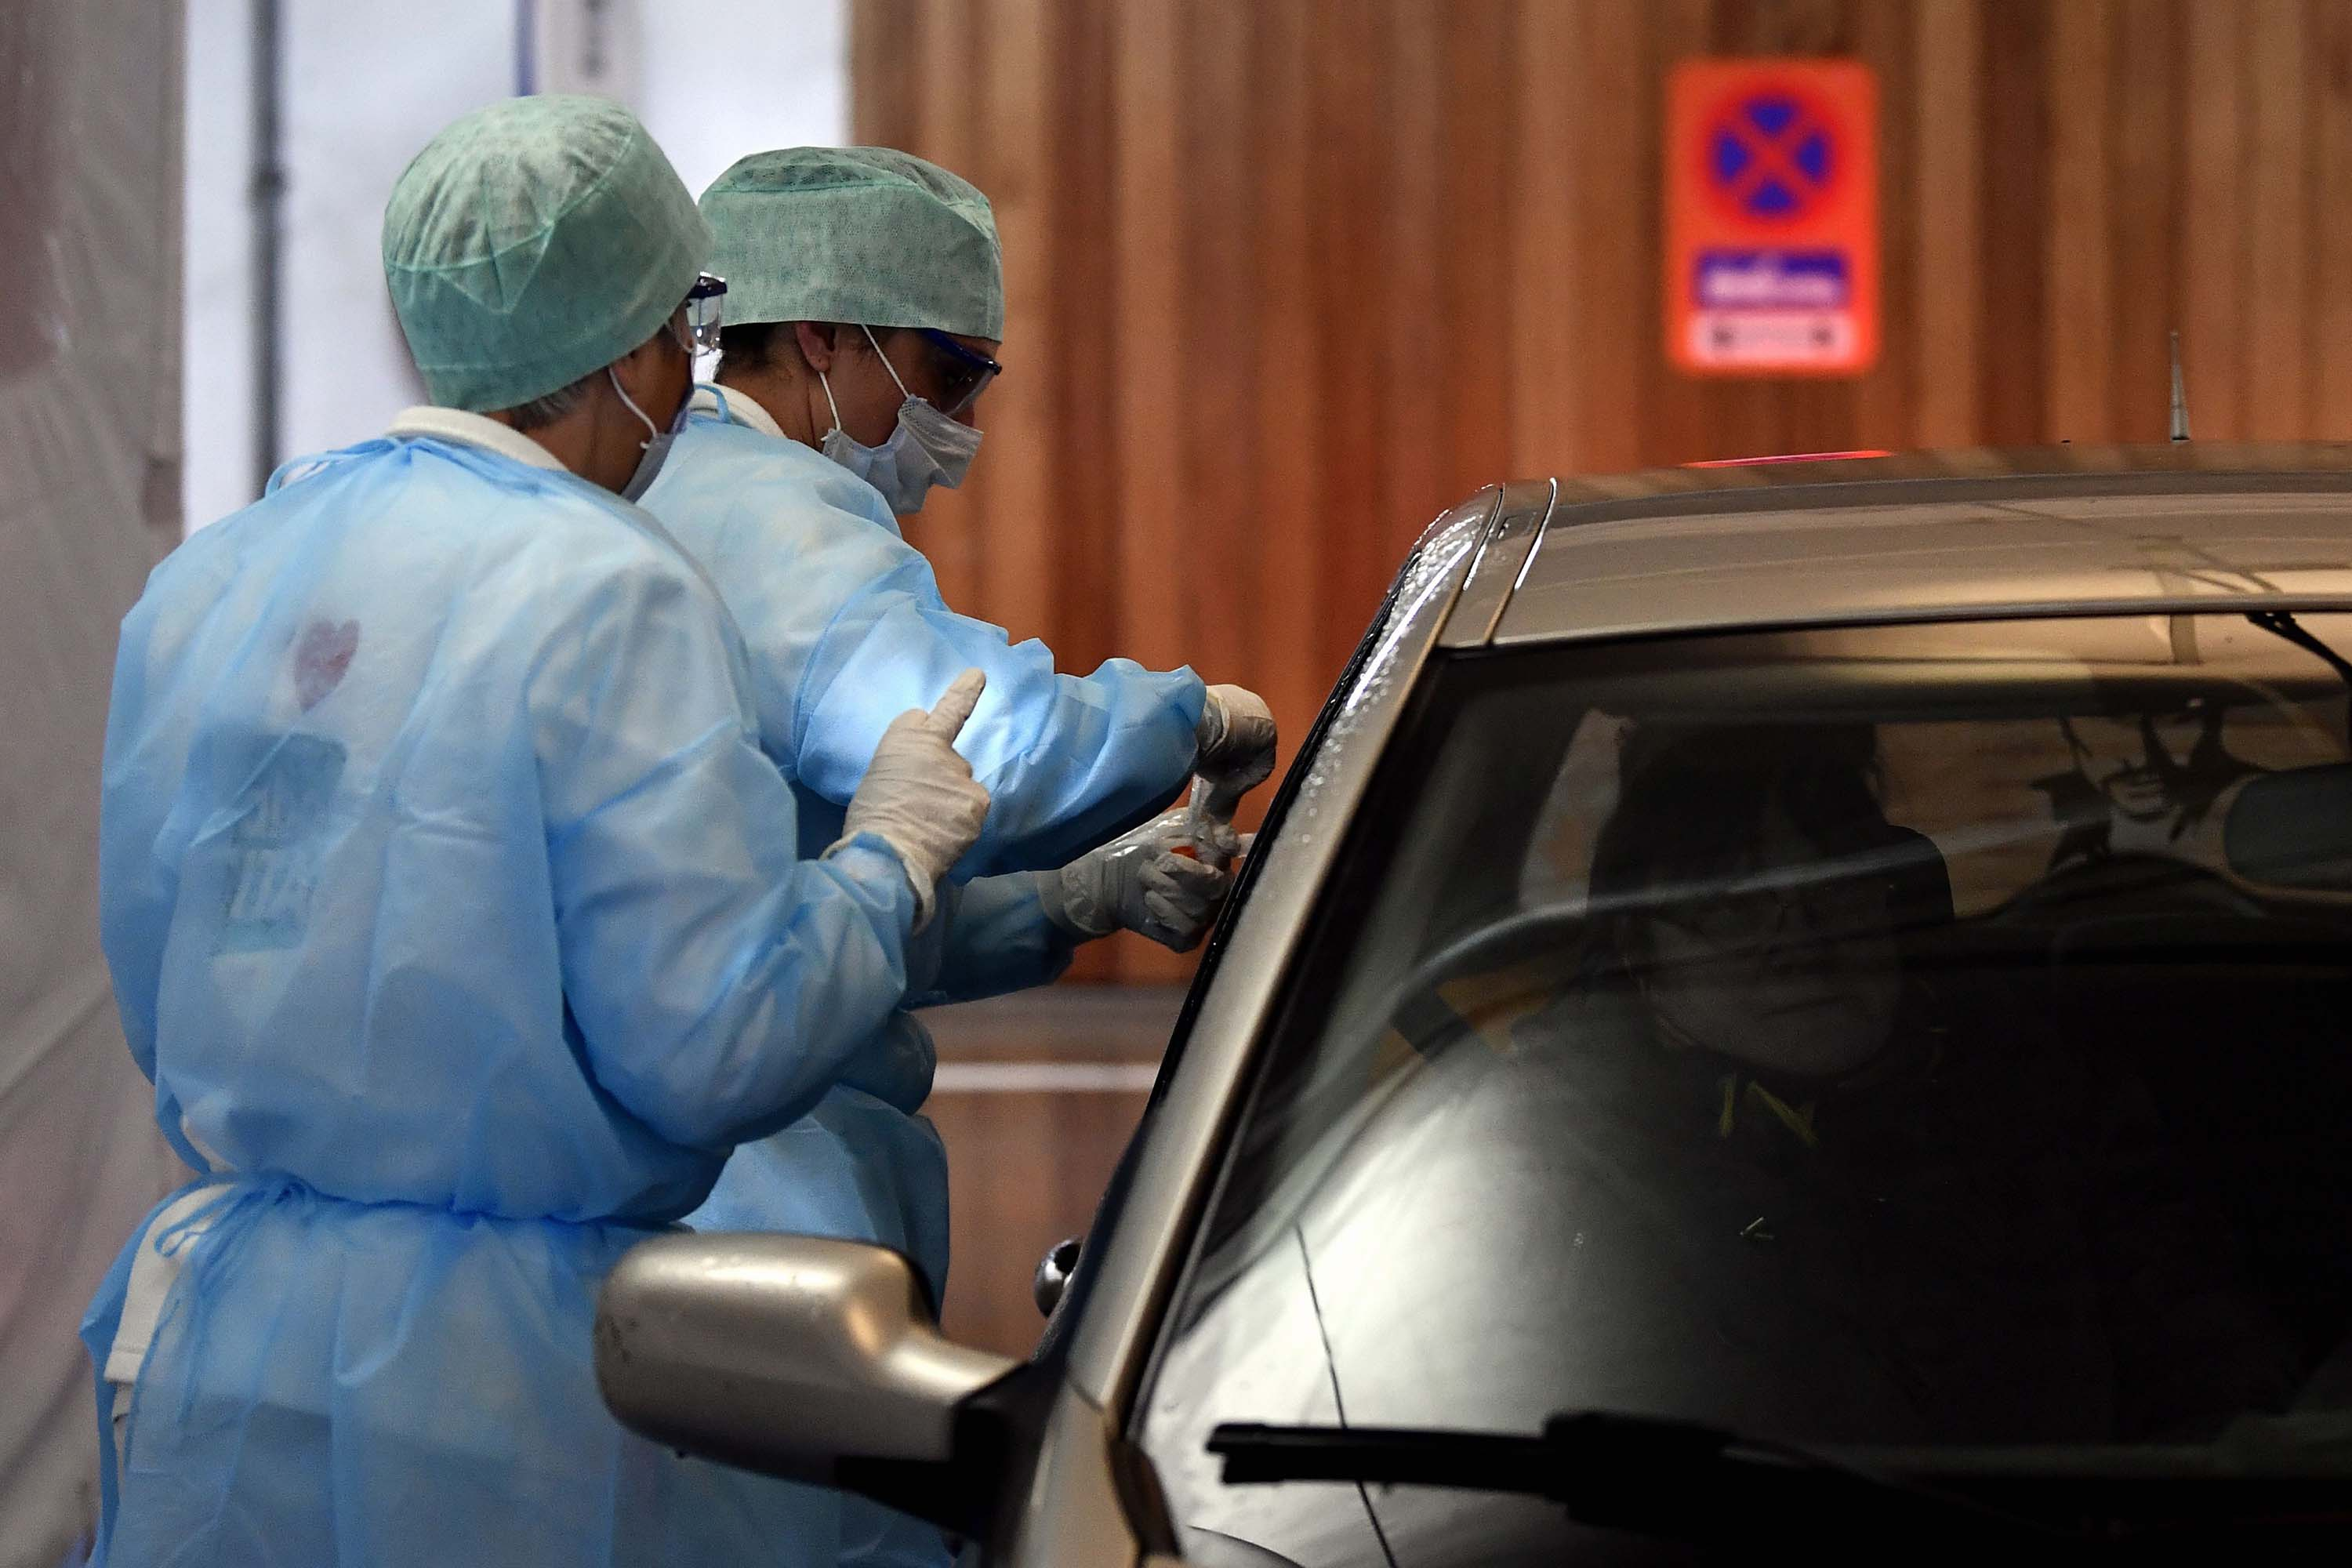 Medical staff take samples from a driver at a drive-through coronavirus testing facility, at hospital in Liege, Belgium, on Tuesday.